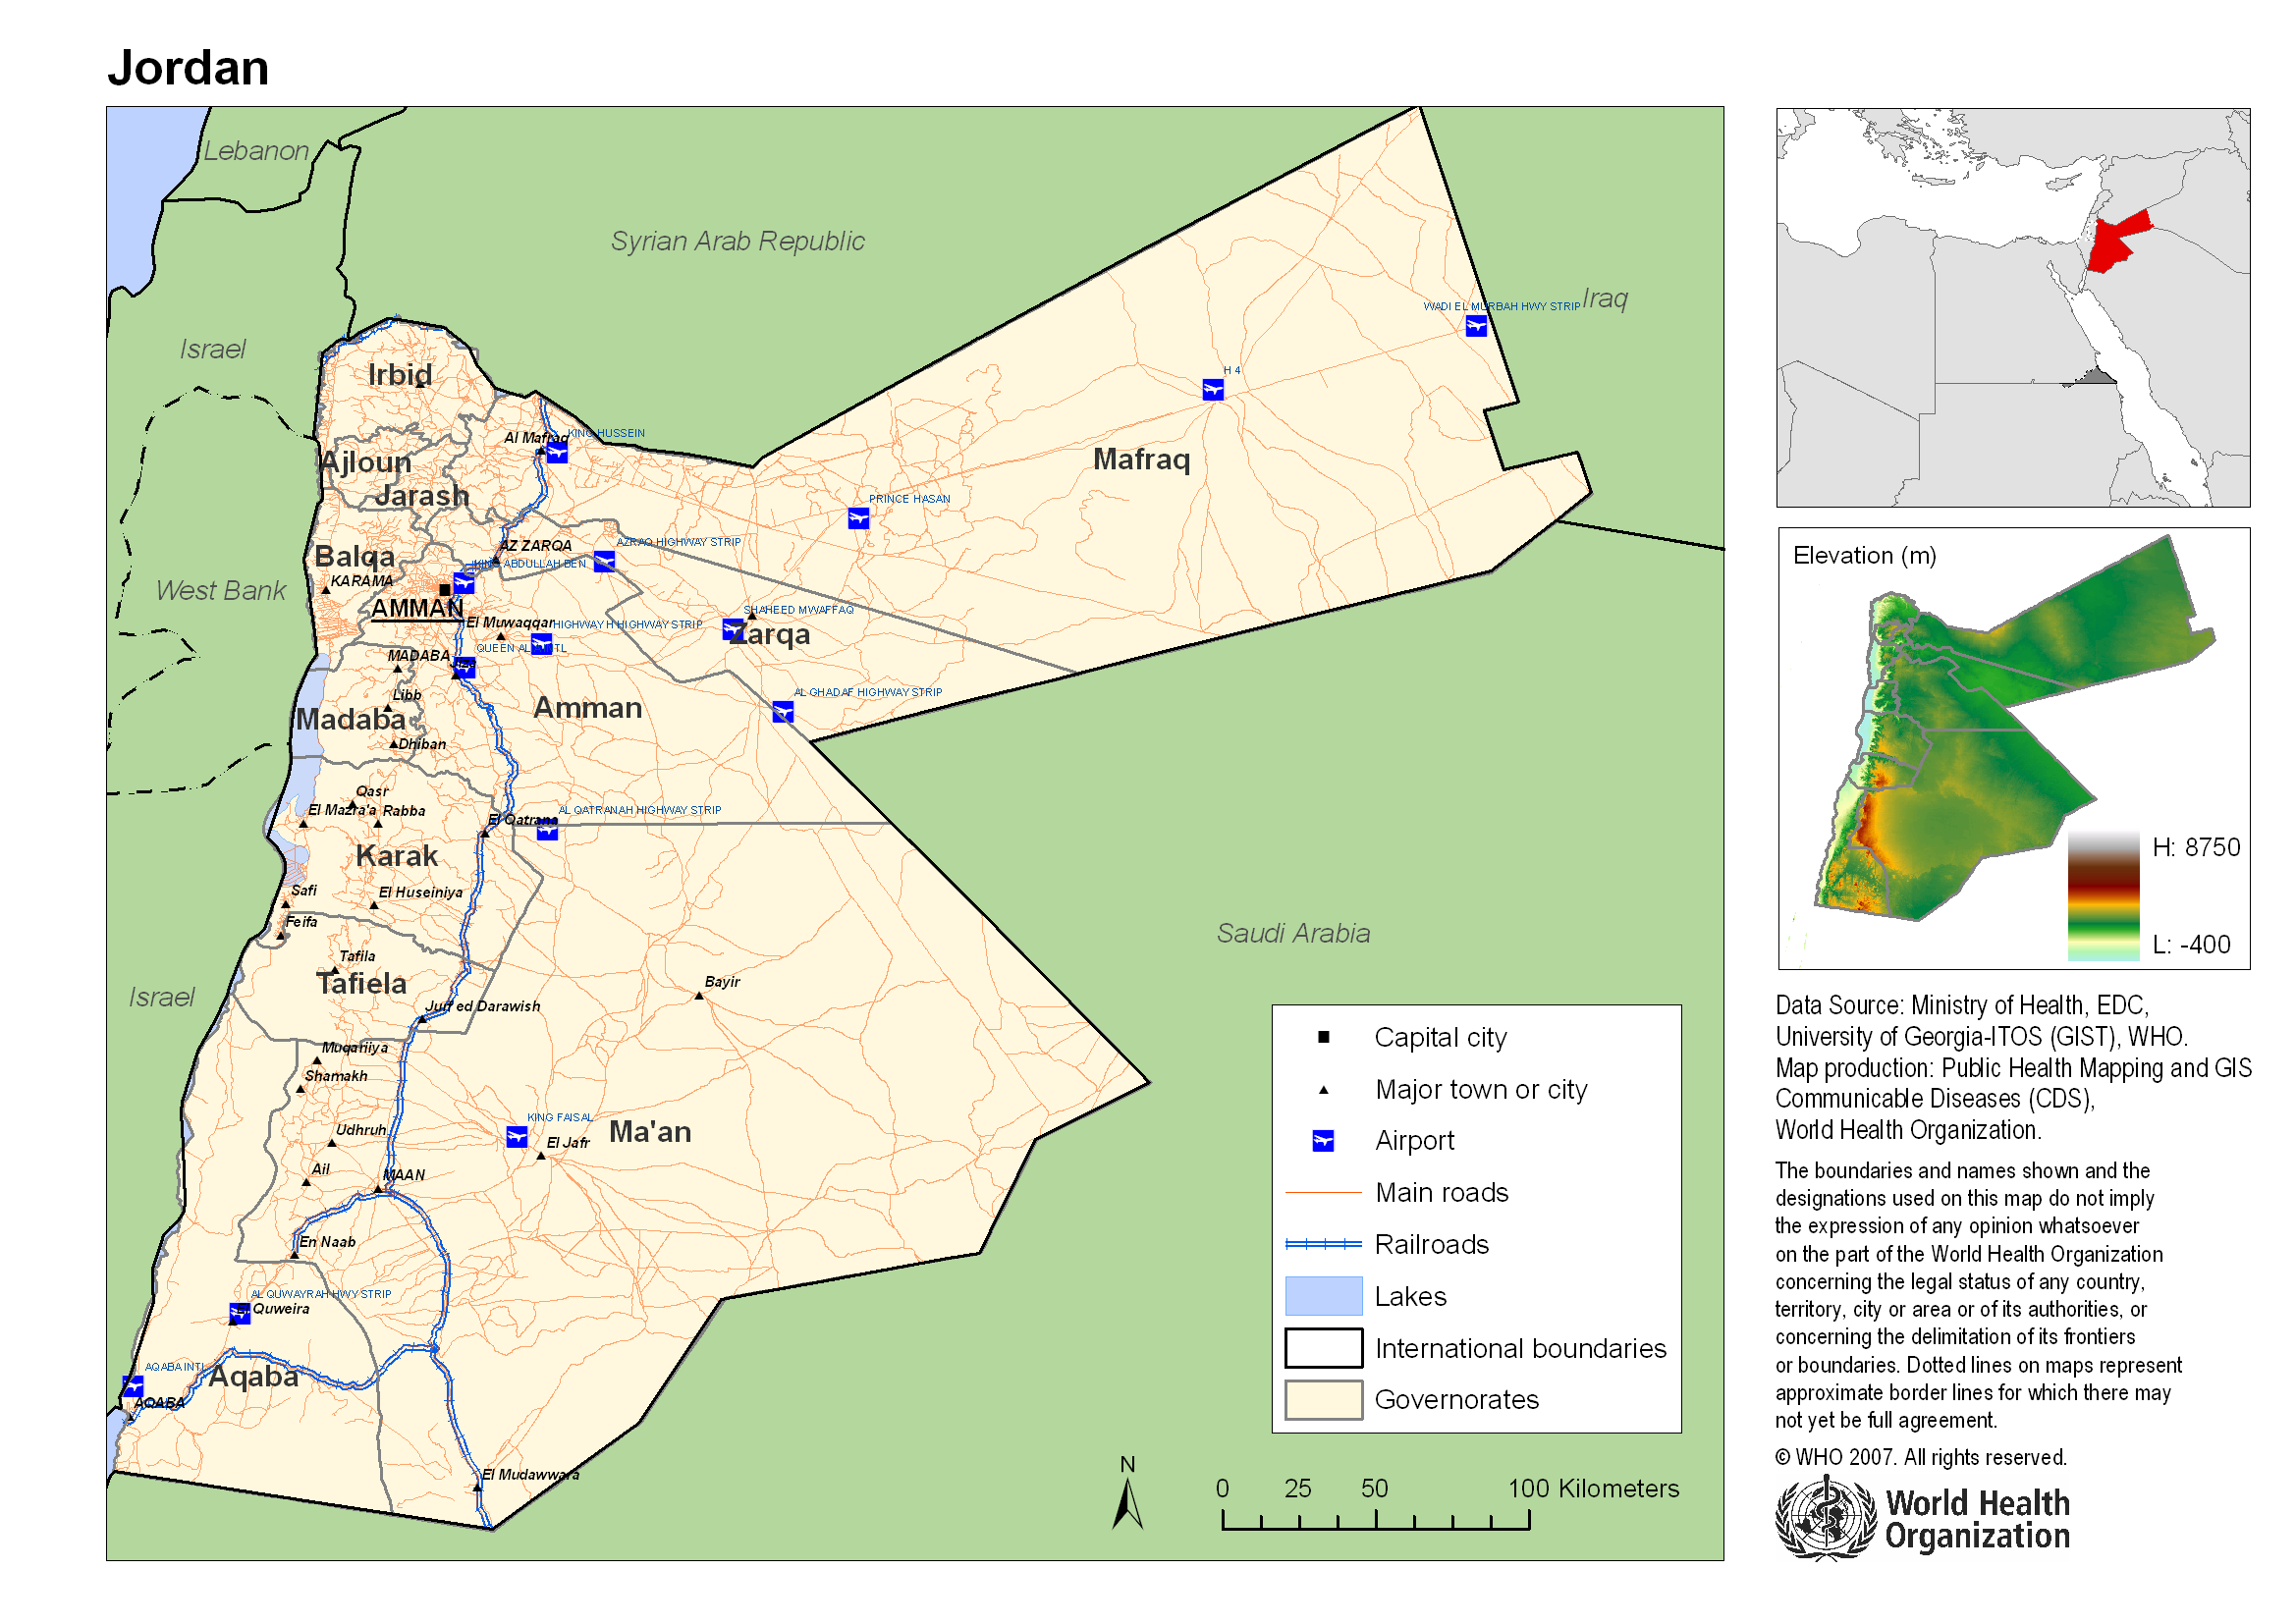 Reference map of jordan jordan reliefweb map from world health organization published on 23 jul 2007 view original gumiabroncs Images